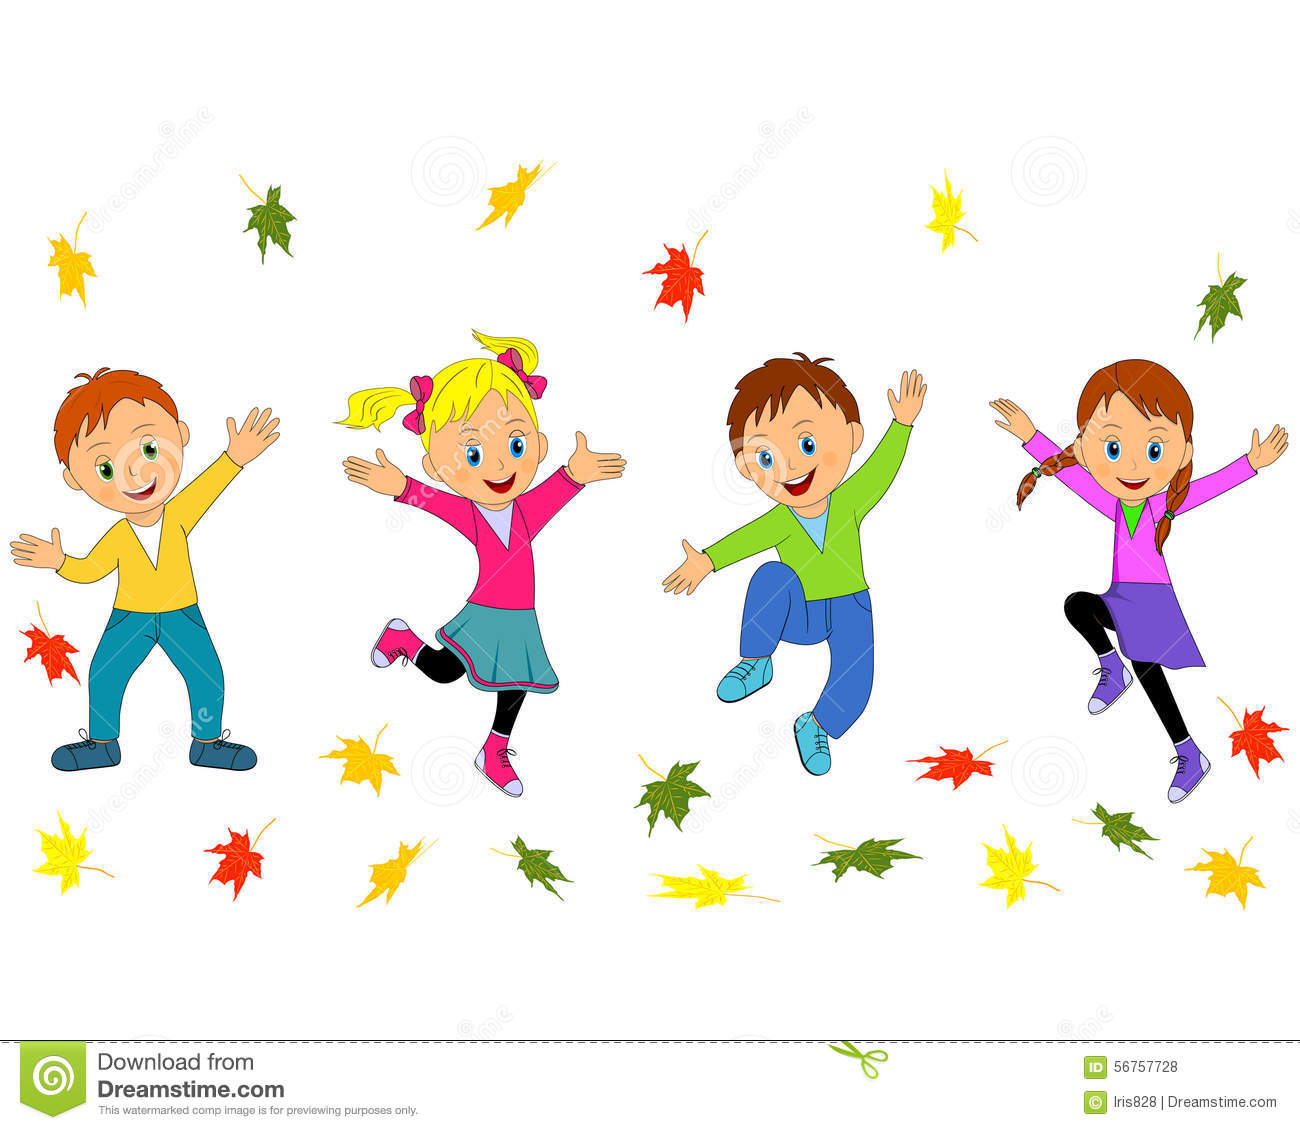 children boys and girls jumping and waving their hands children playing clip art images children playing clip art b&w